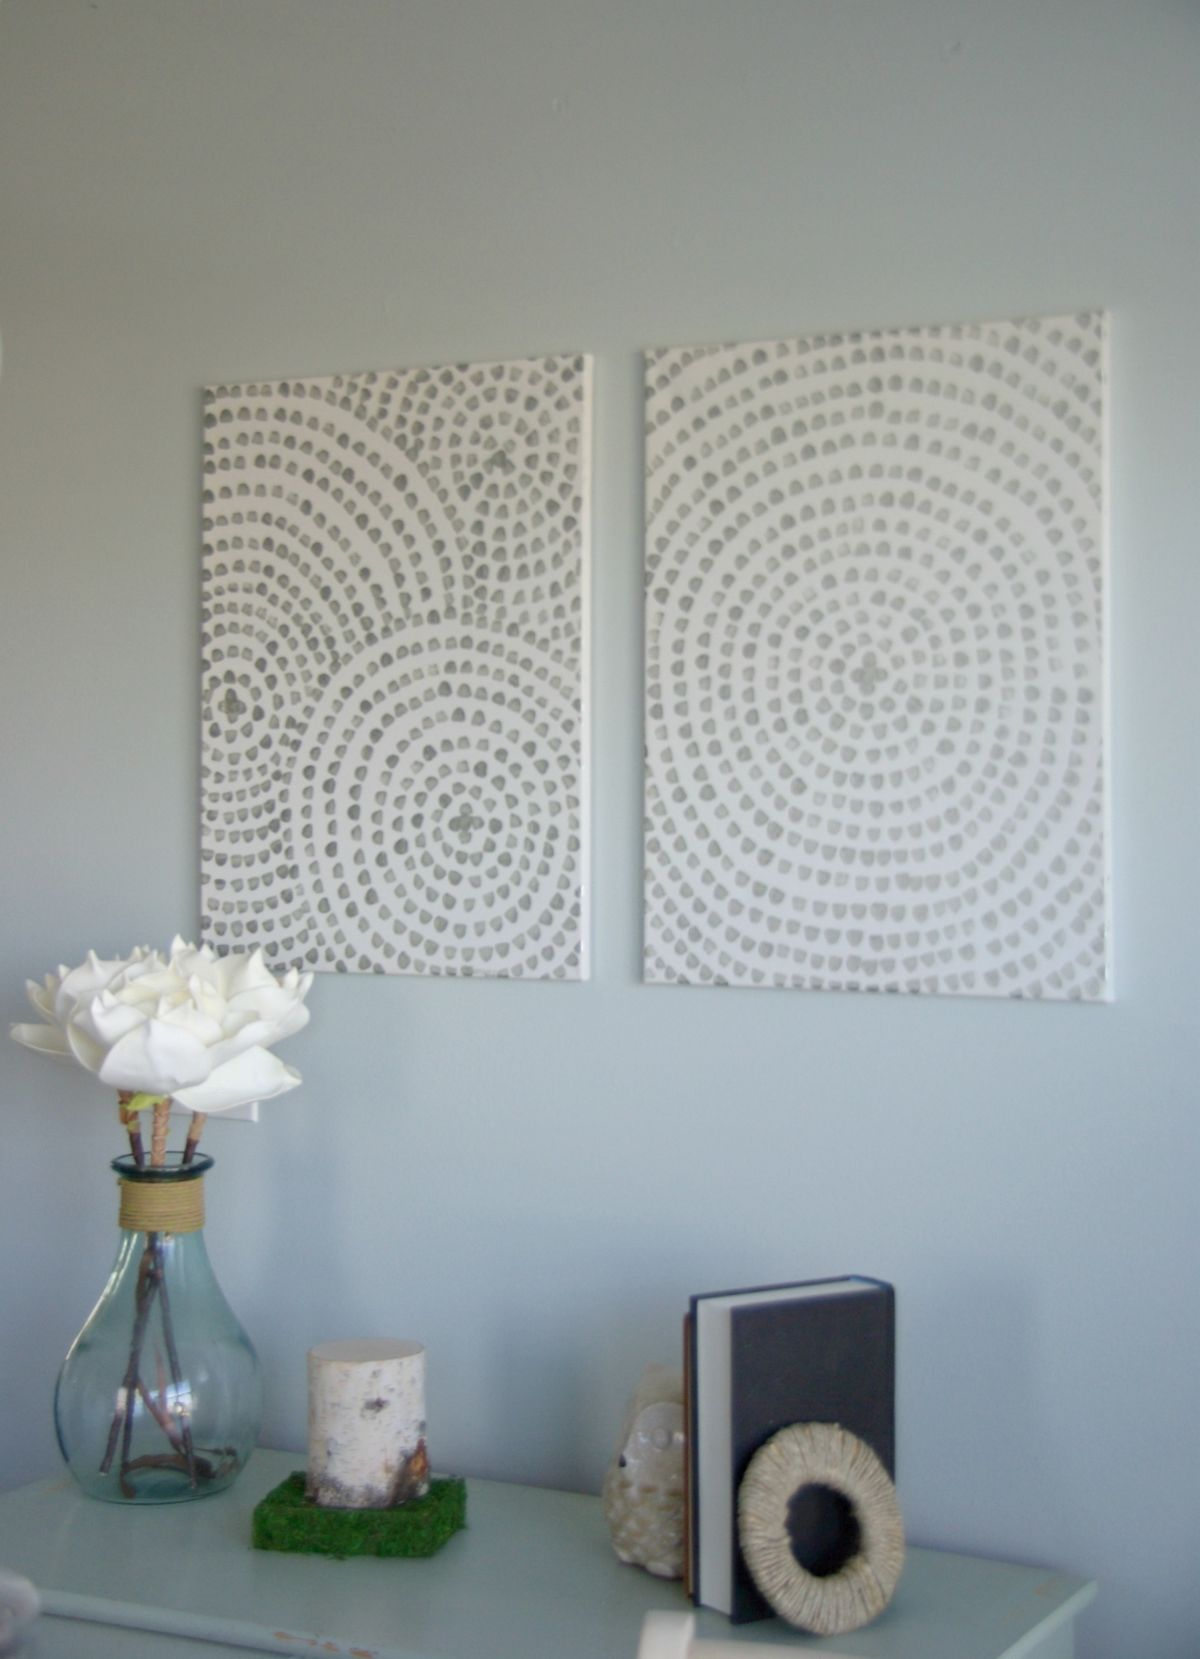 DIY Canvas Wall Art - A Low Cost Way To Add Art To Your Home | Diy ...